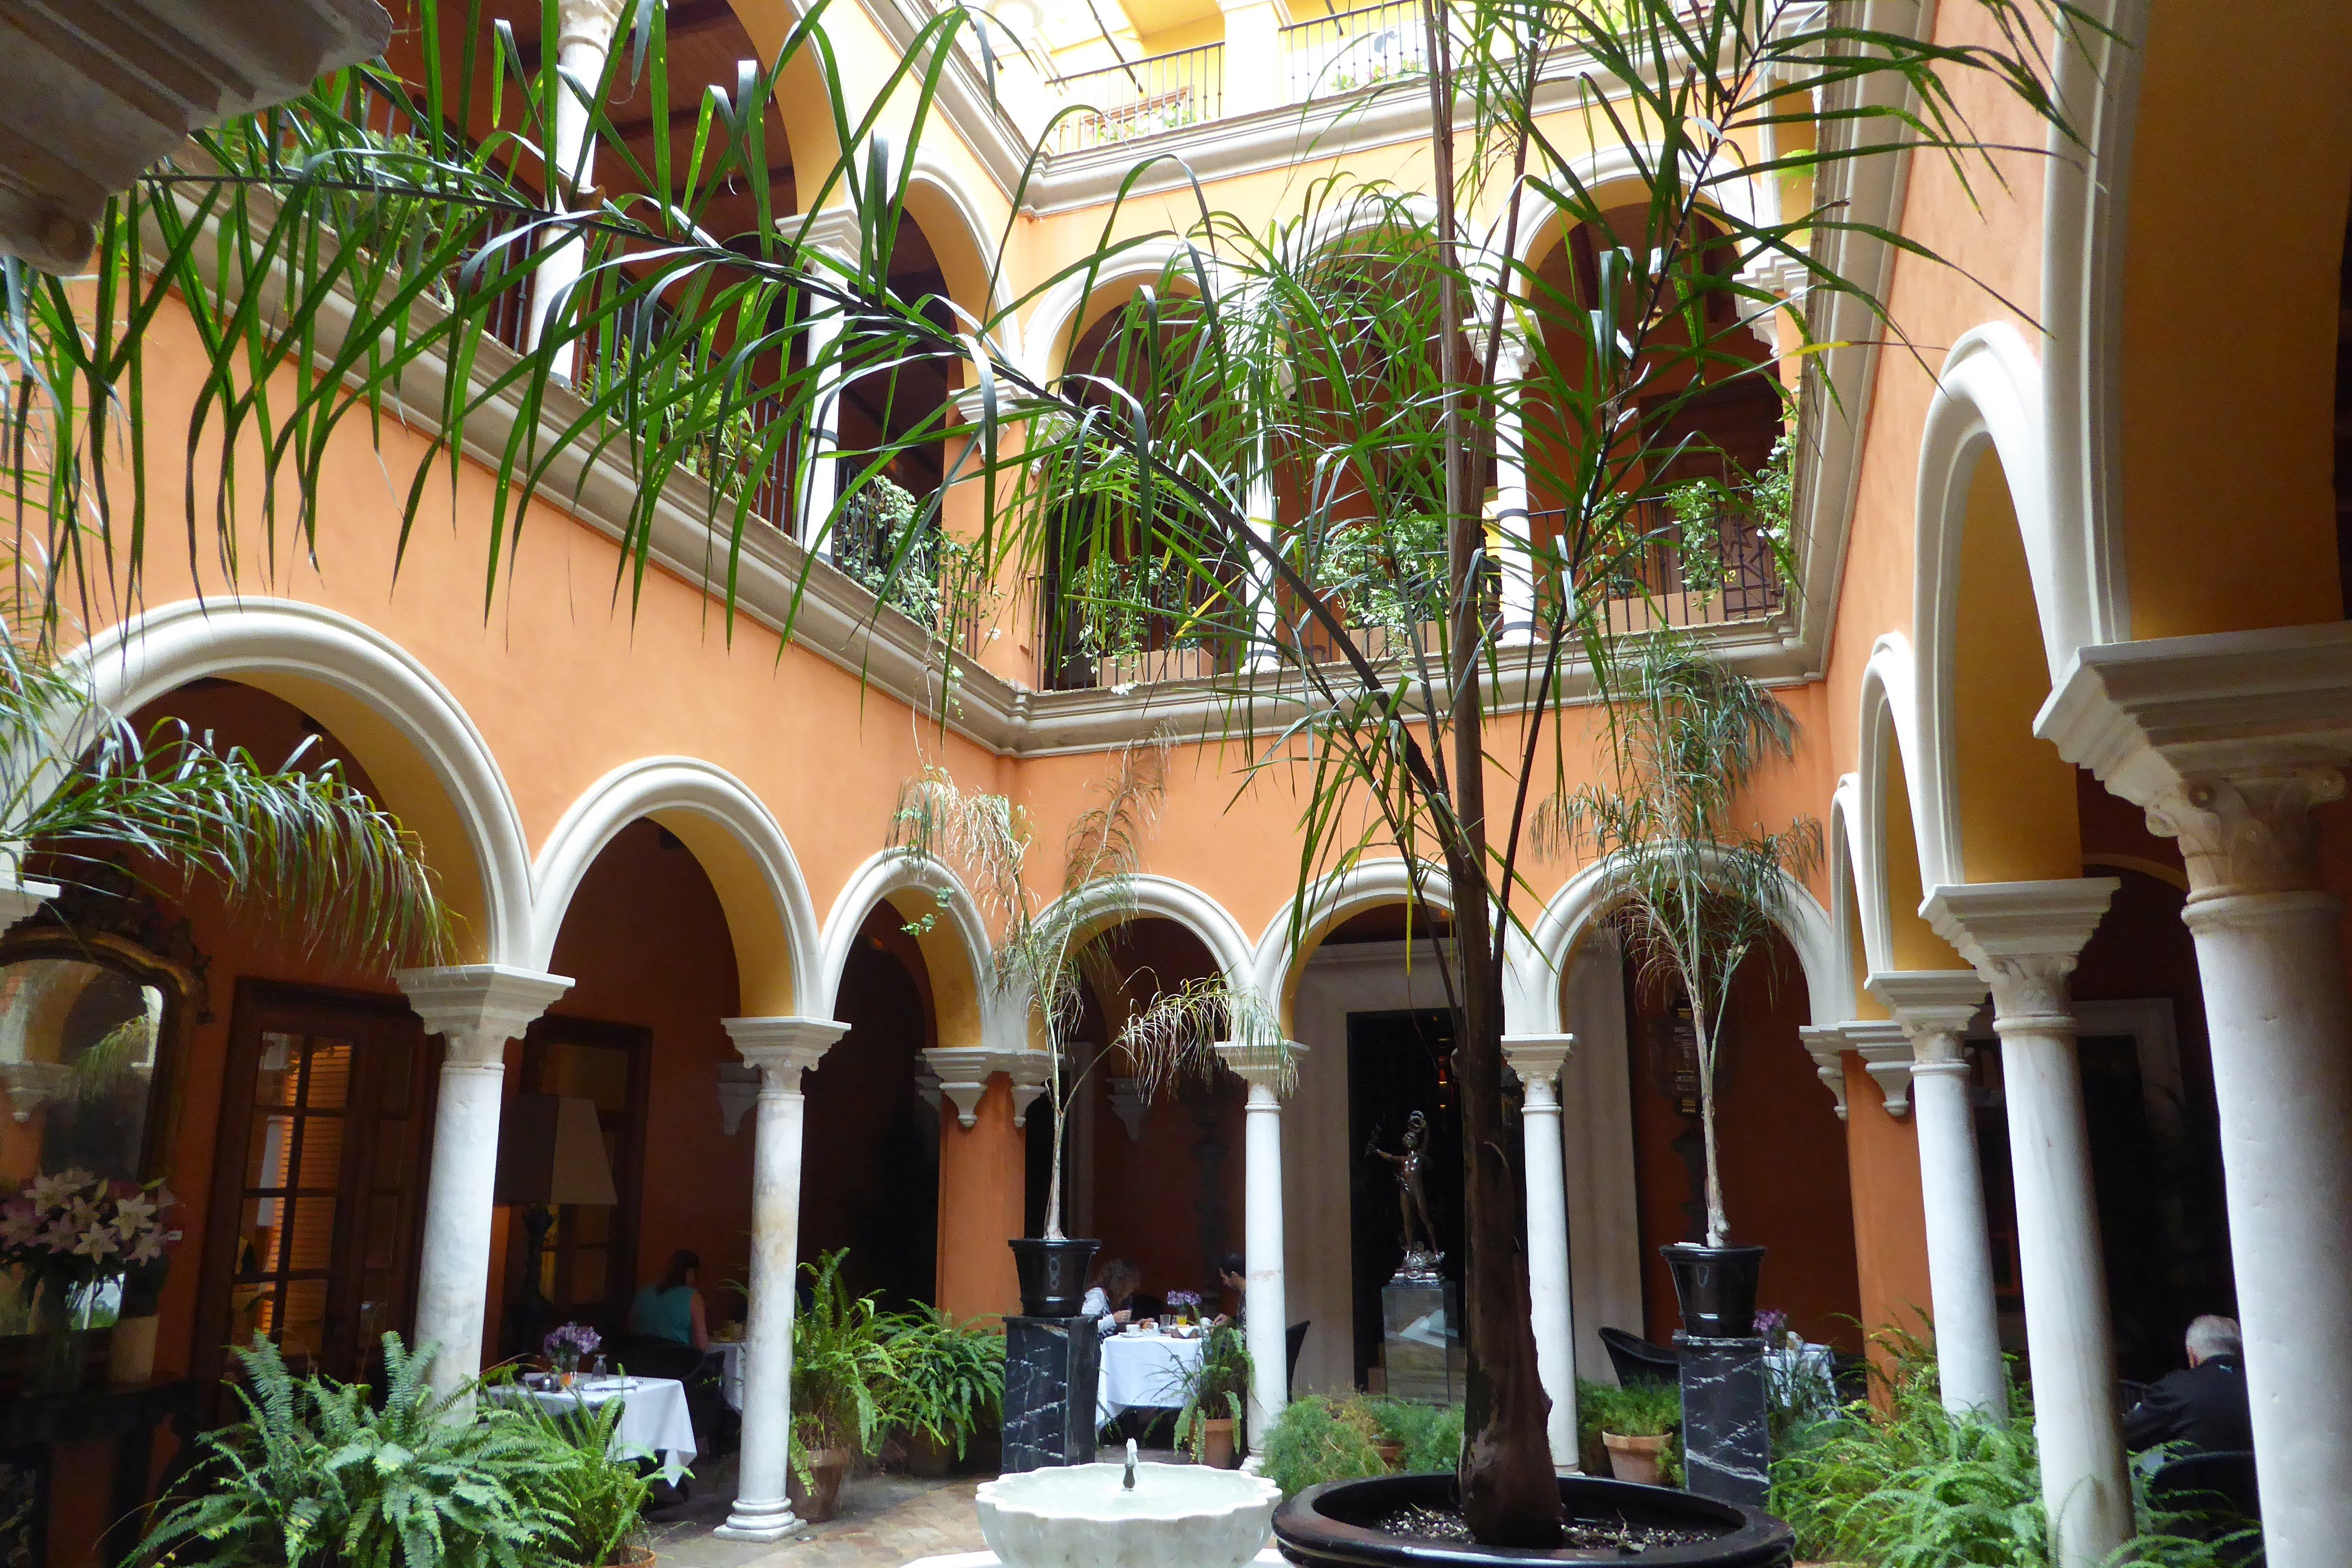 The apartment is set in old town district and offers access to the royal palace real alcazar. Courtyard of the Casa del Poeta Boutique Hotel located in ...